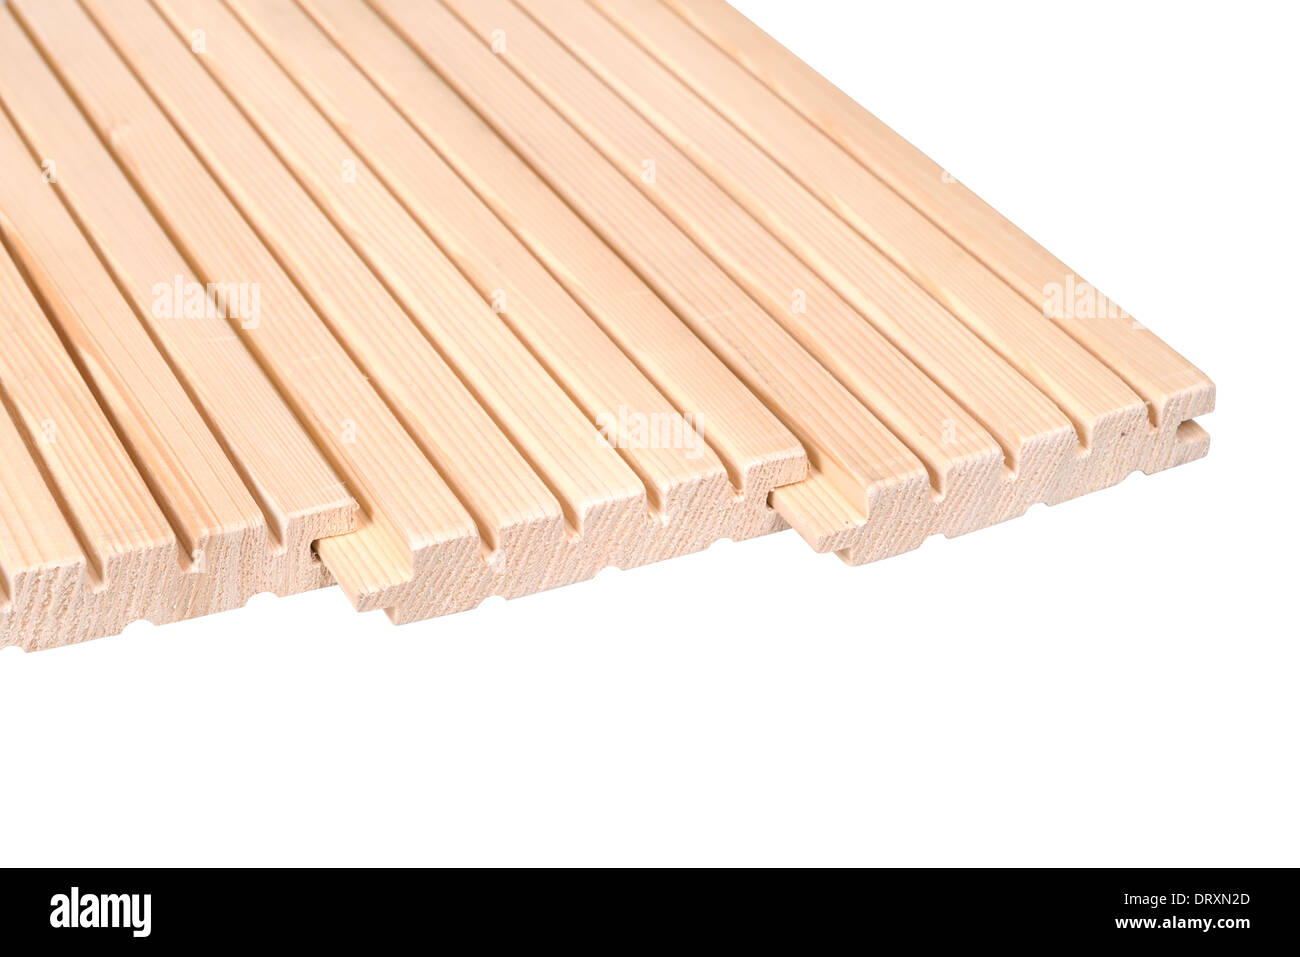 Pine floorboards isolated over white with clipping path. Stock Photo